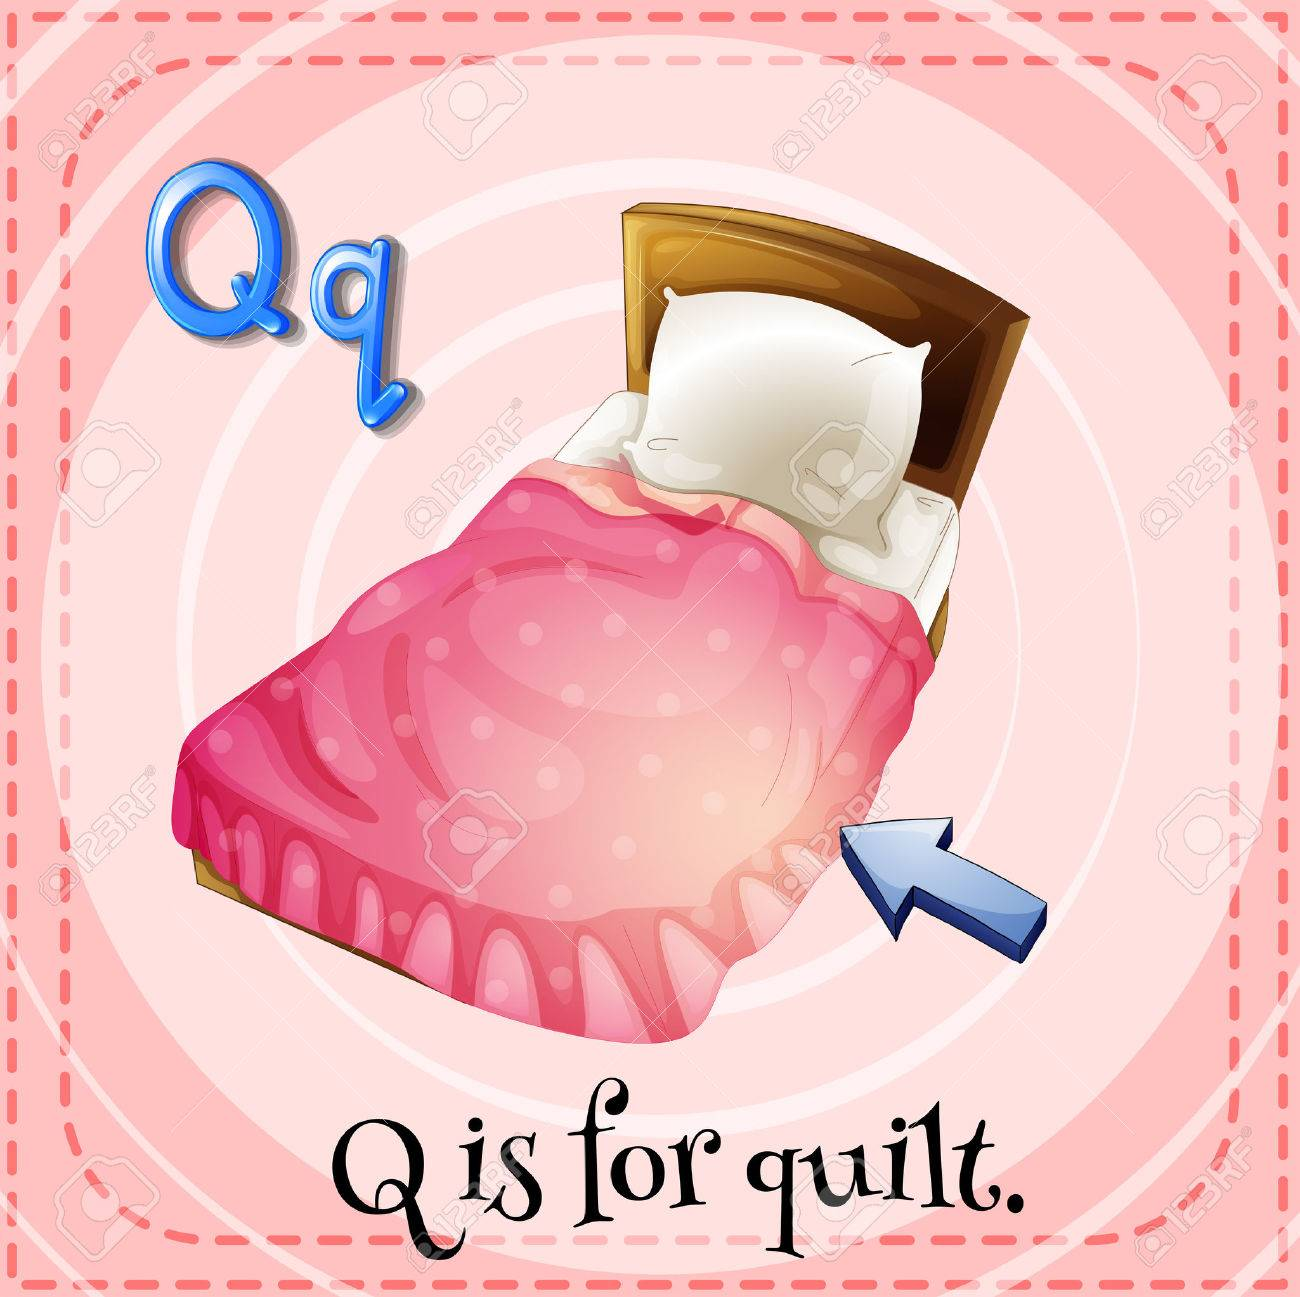 Illustration Of A Letter Q Is For Quilt Royalty Free Cliparts ... : q is for quilt - Adamdwight.com